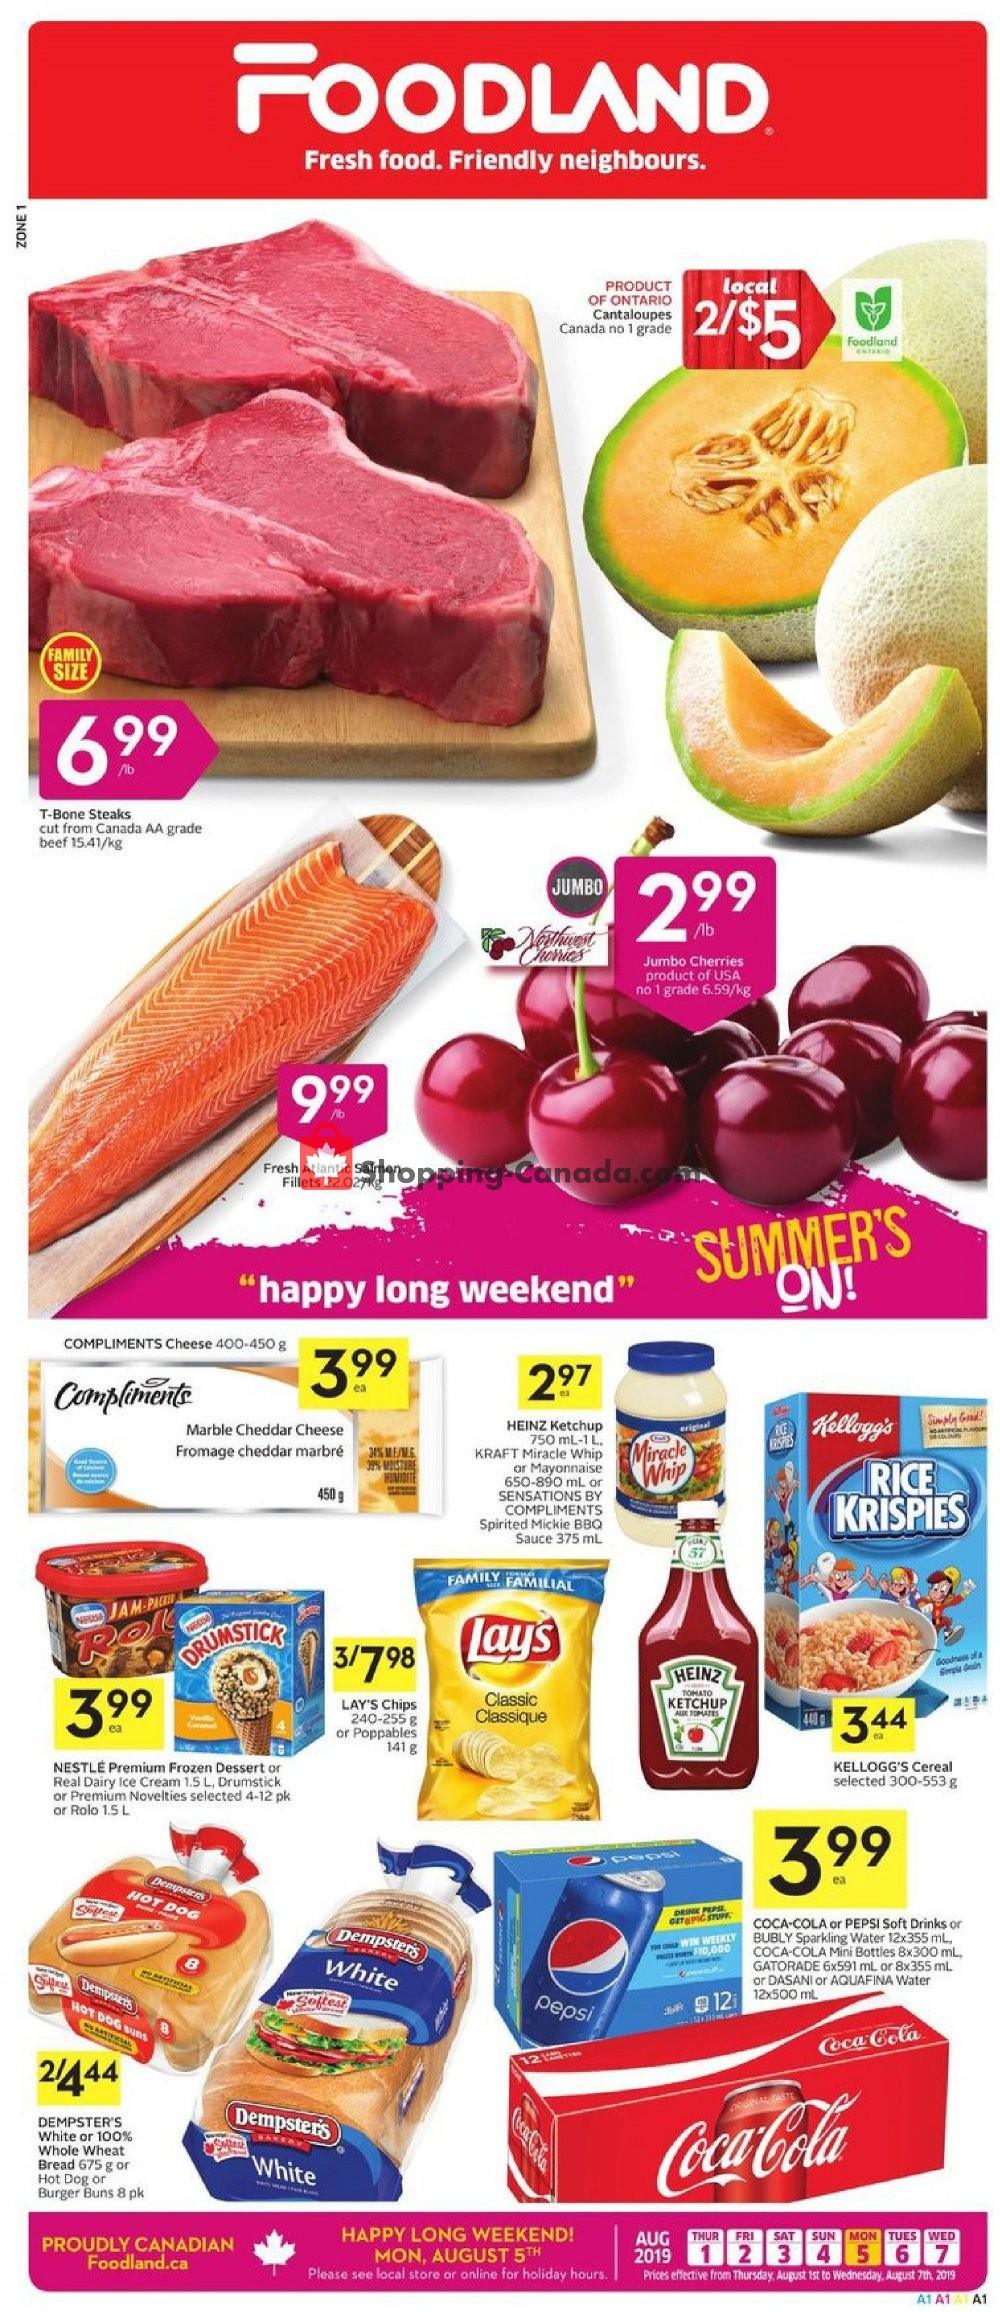 Flyer Foodland Canada - from Thursday August 1, 2019 to Wednesday August 7, 2019